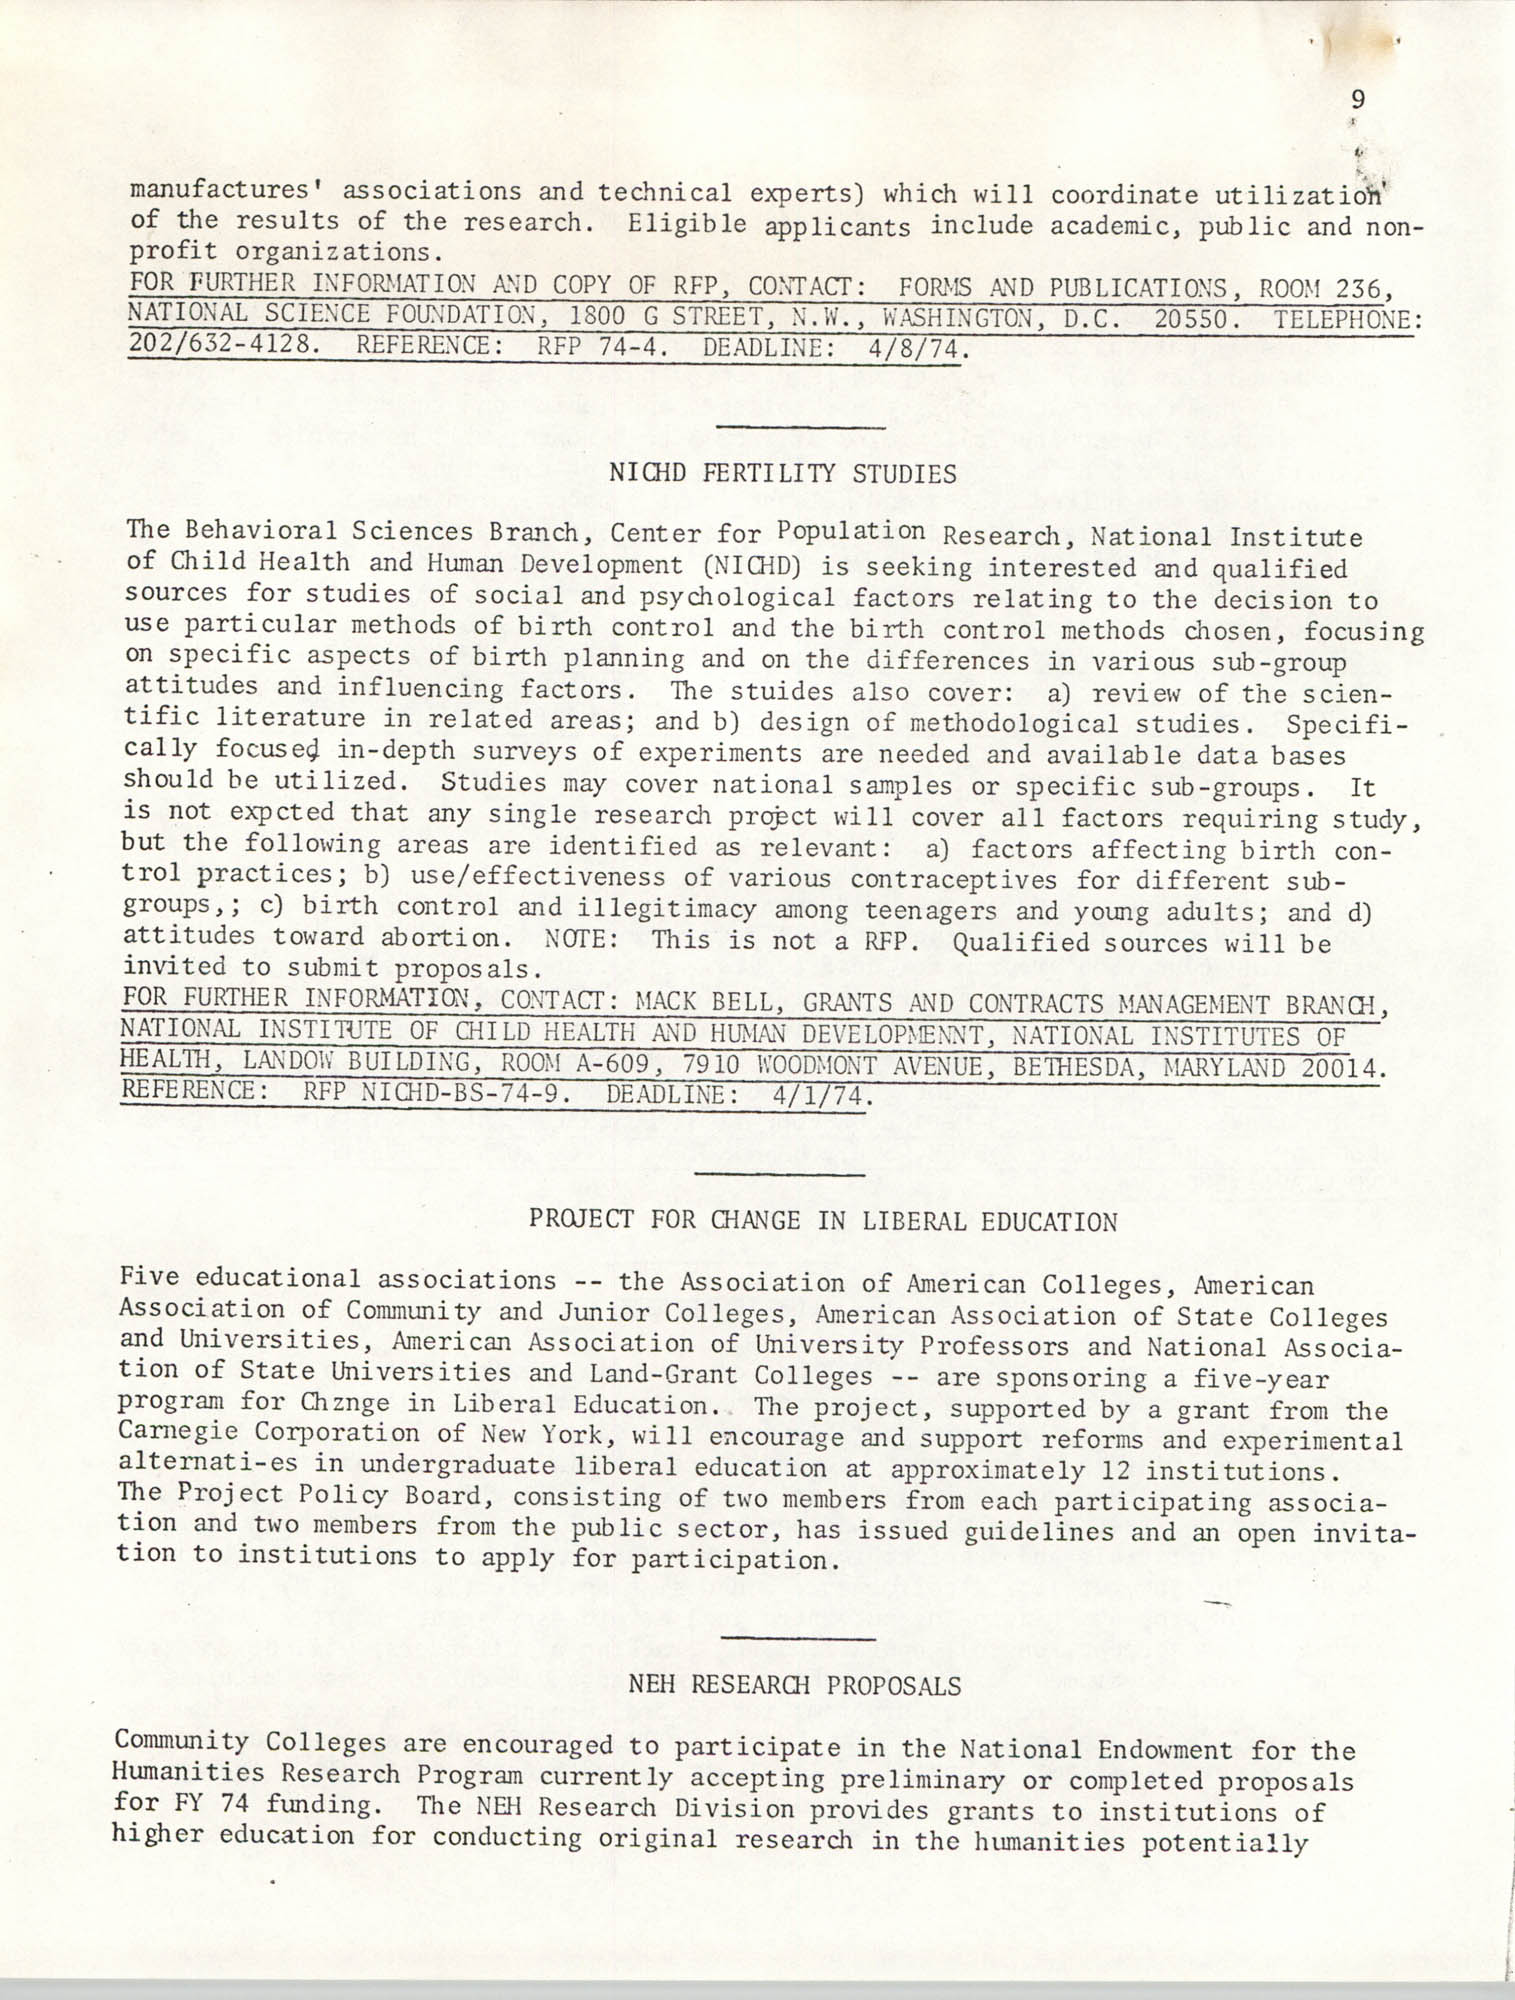 SHARE, Volume II, Number 3, March 1974, Page 9